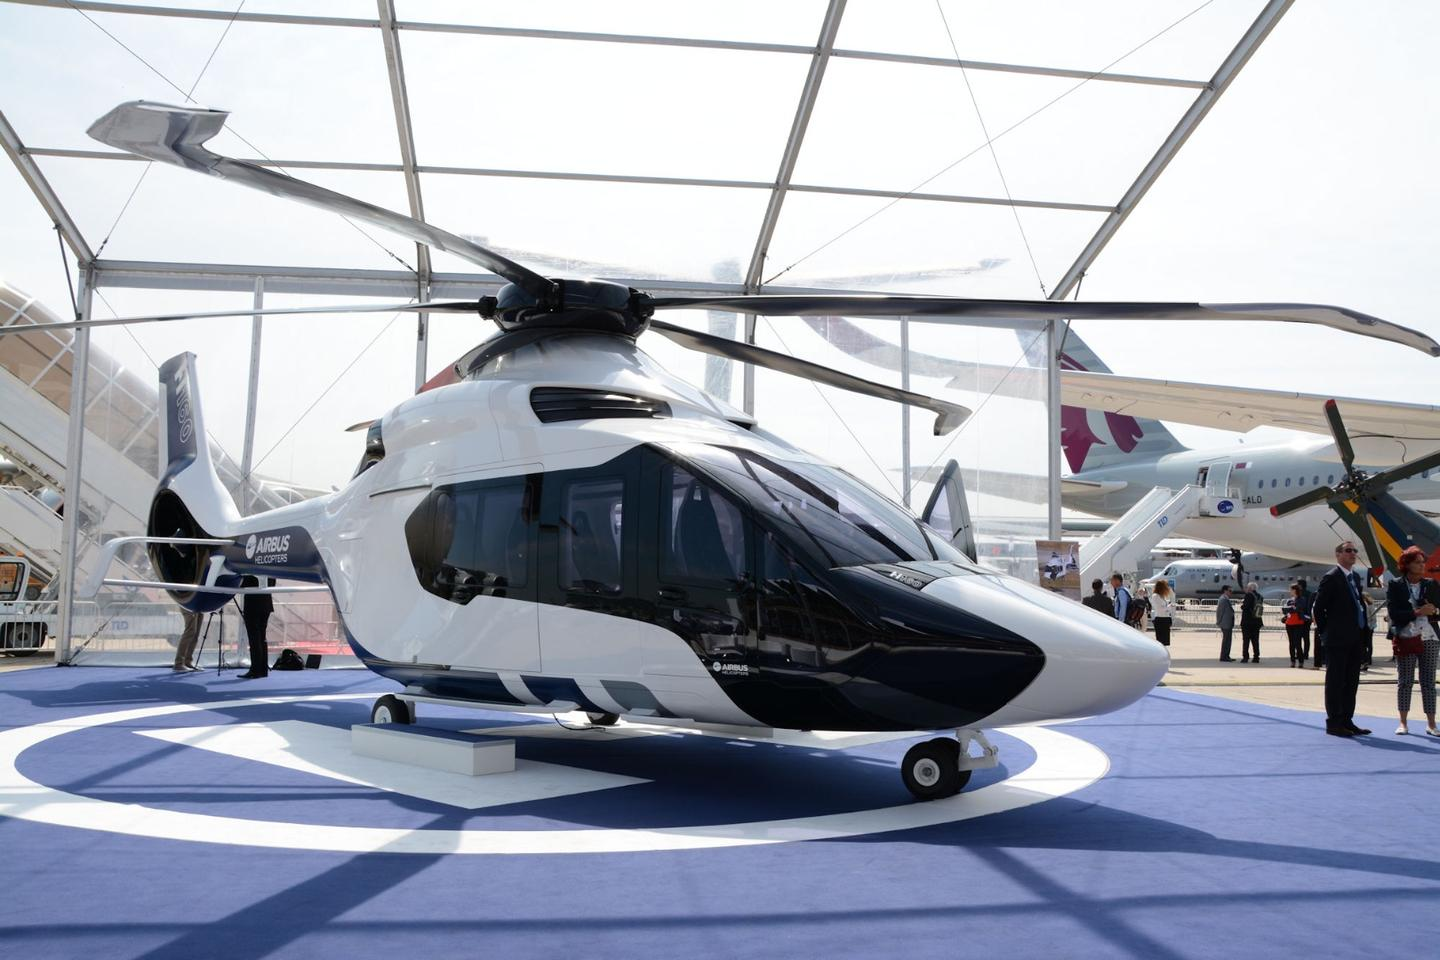 A full-size model of the Airbus H160, on display at the Paris Air show